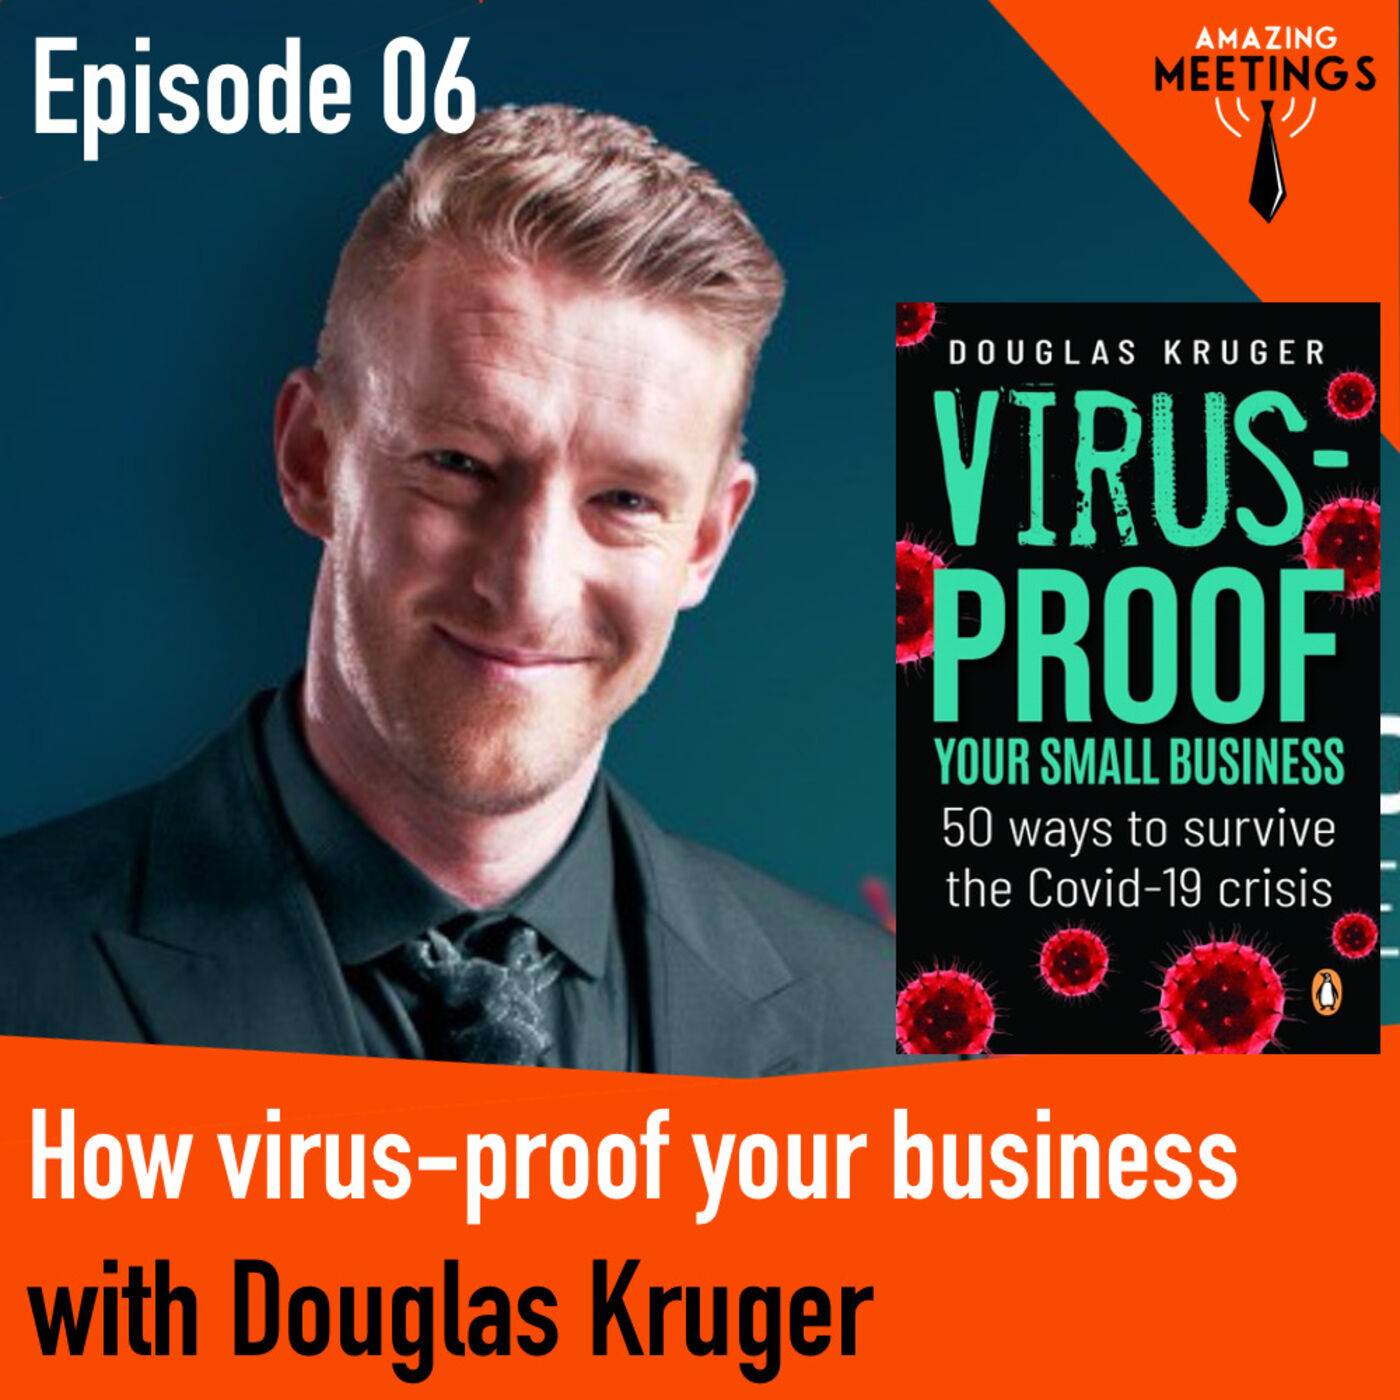 How to virus-proof your business with Douglas Kruger